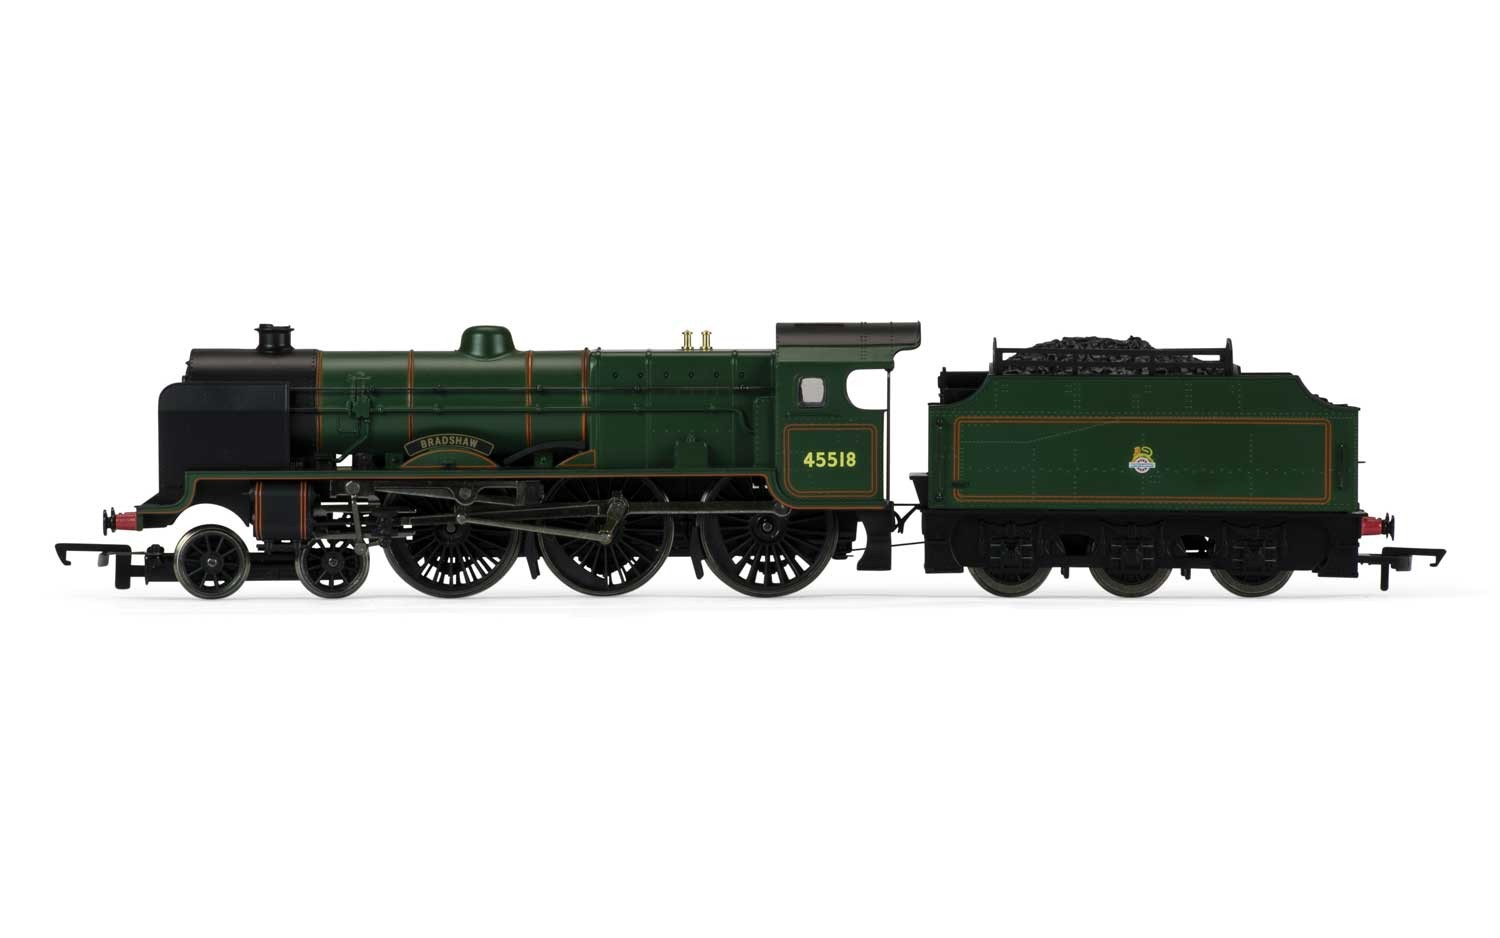 hornby model train computer - photo #31